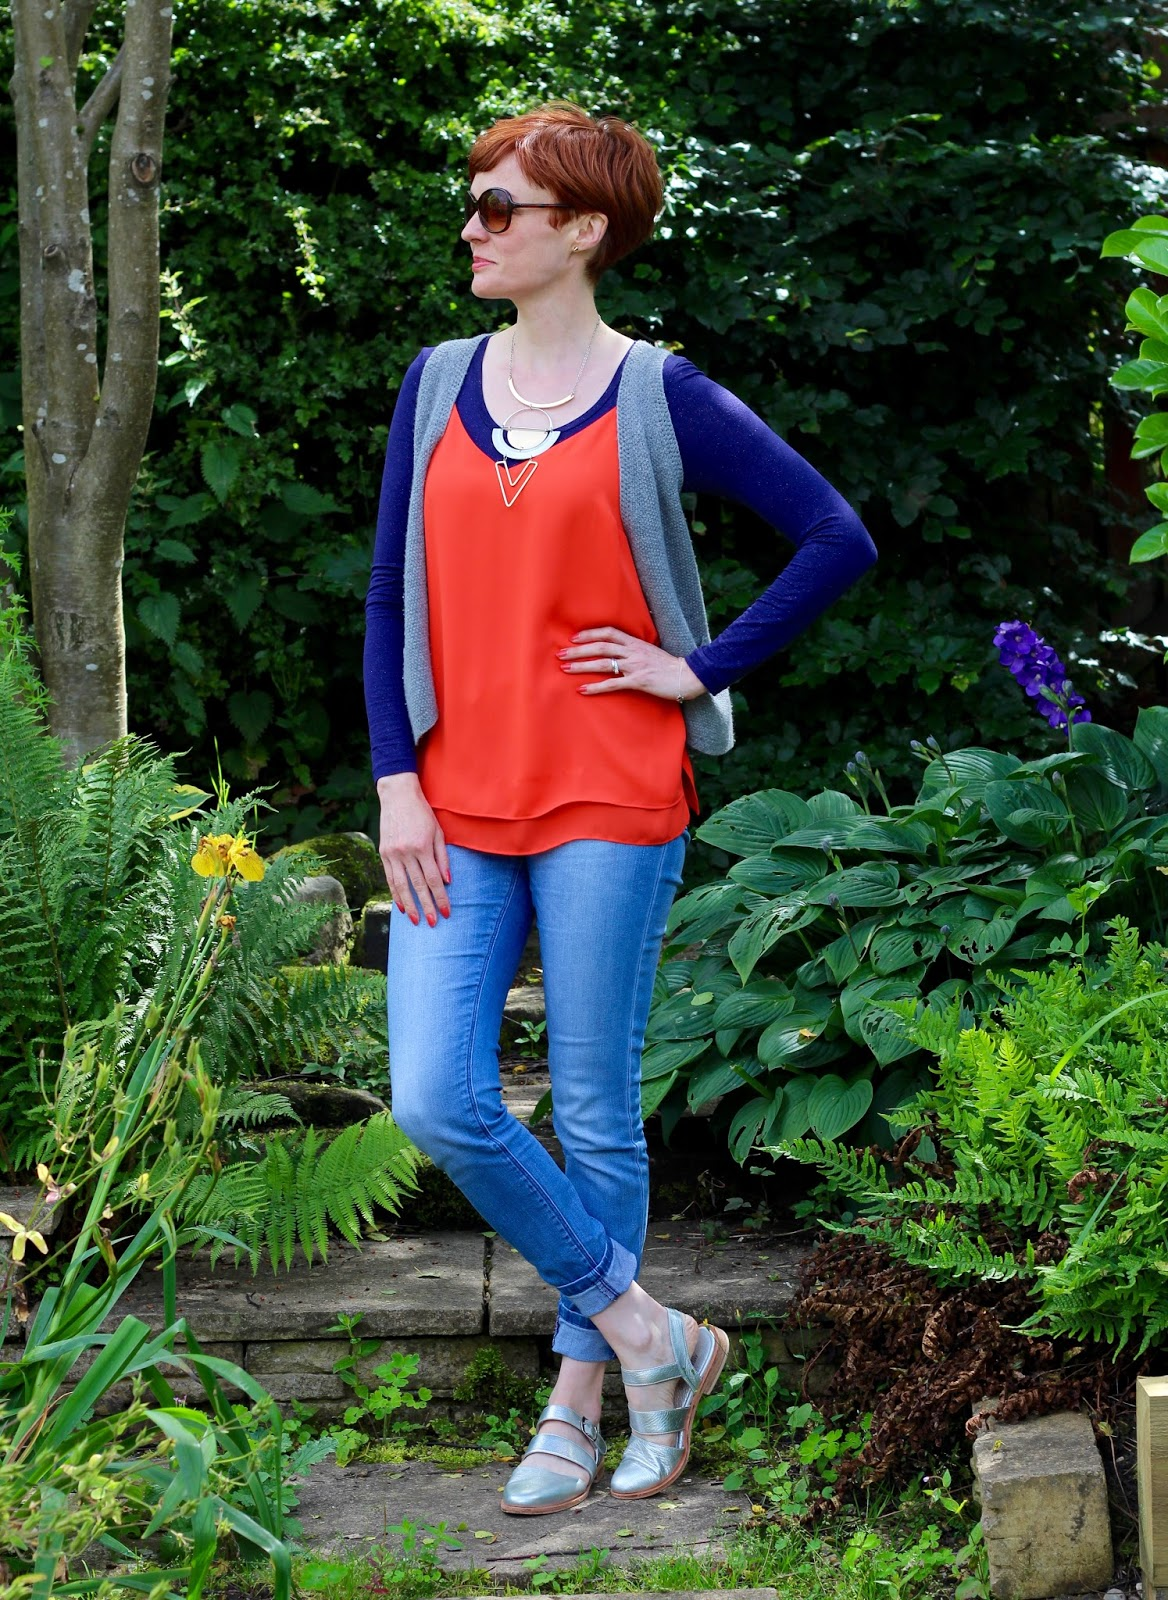 Fake Fabulous | Orange camisole, Navy undertop, grey waistcoat, skinny light denim jeans and silver shoes.